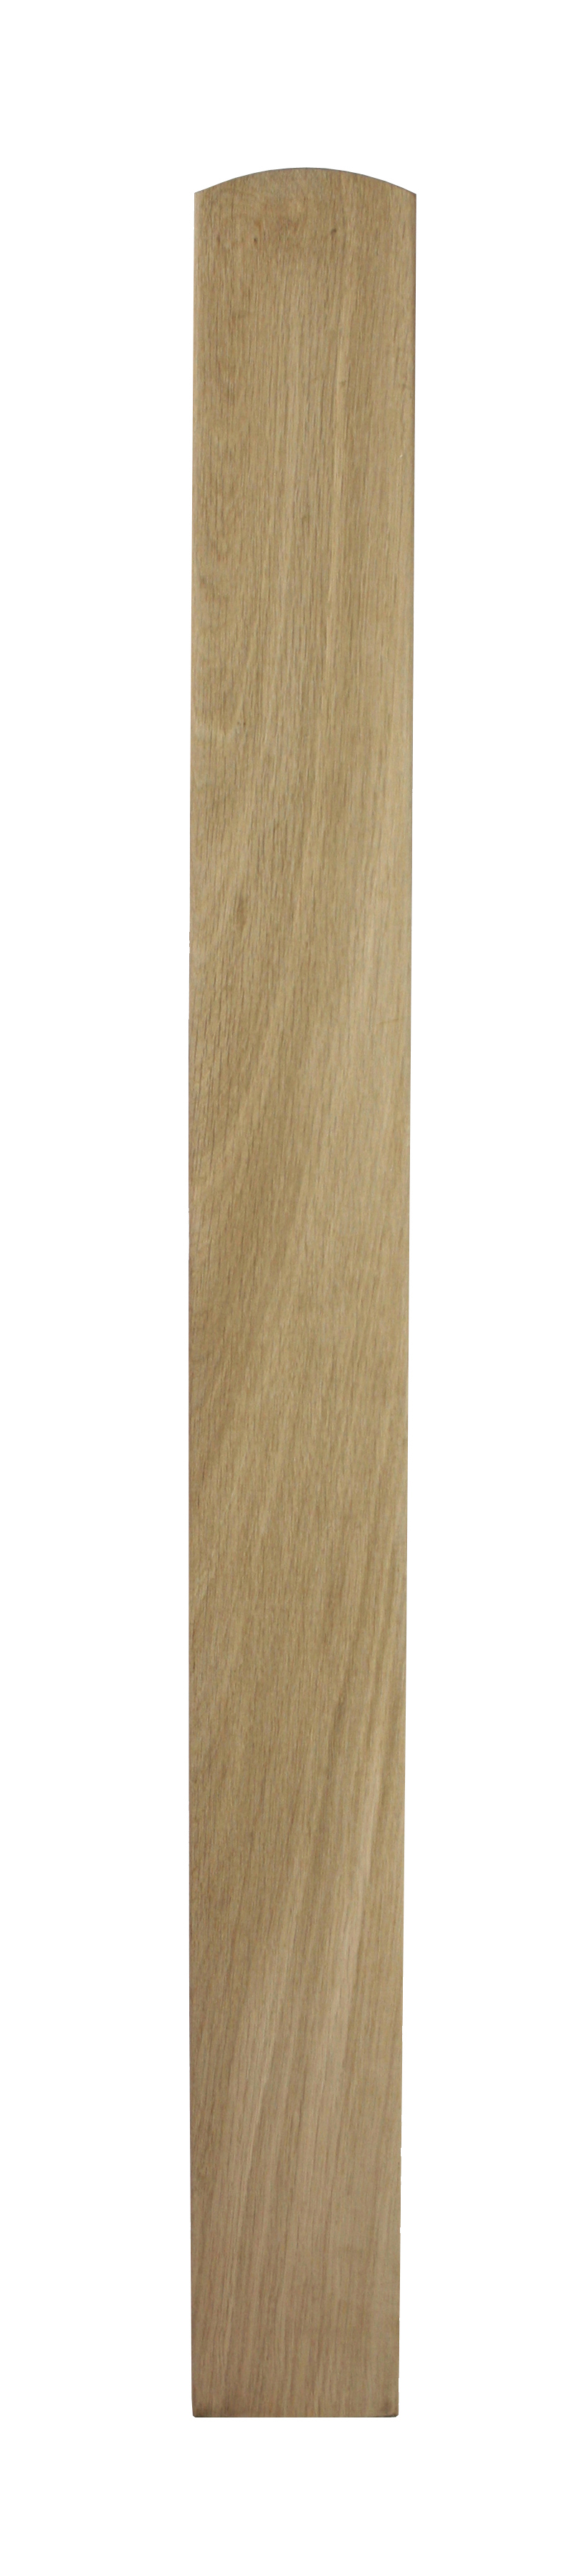 1 Oak Newel Base 915 90